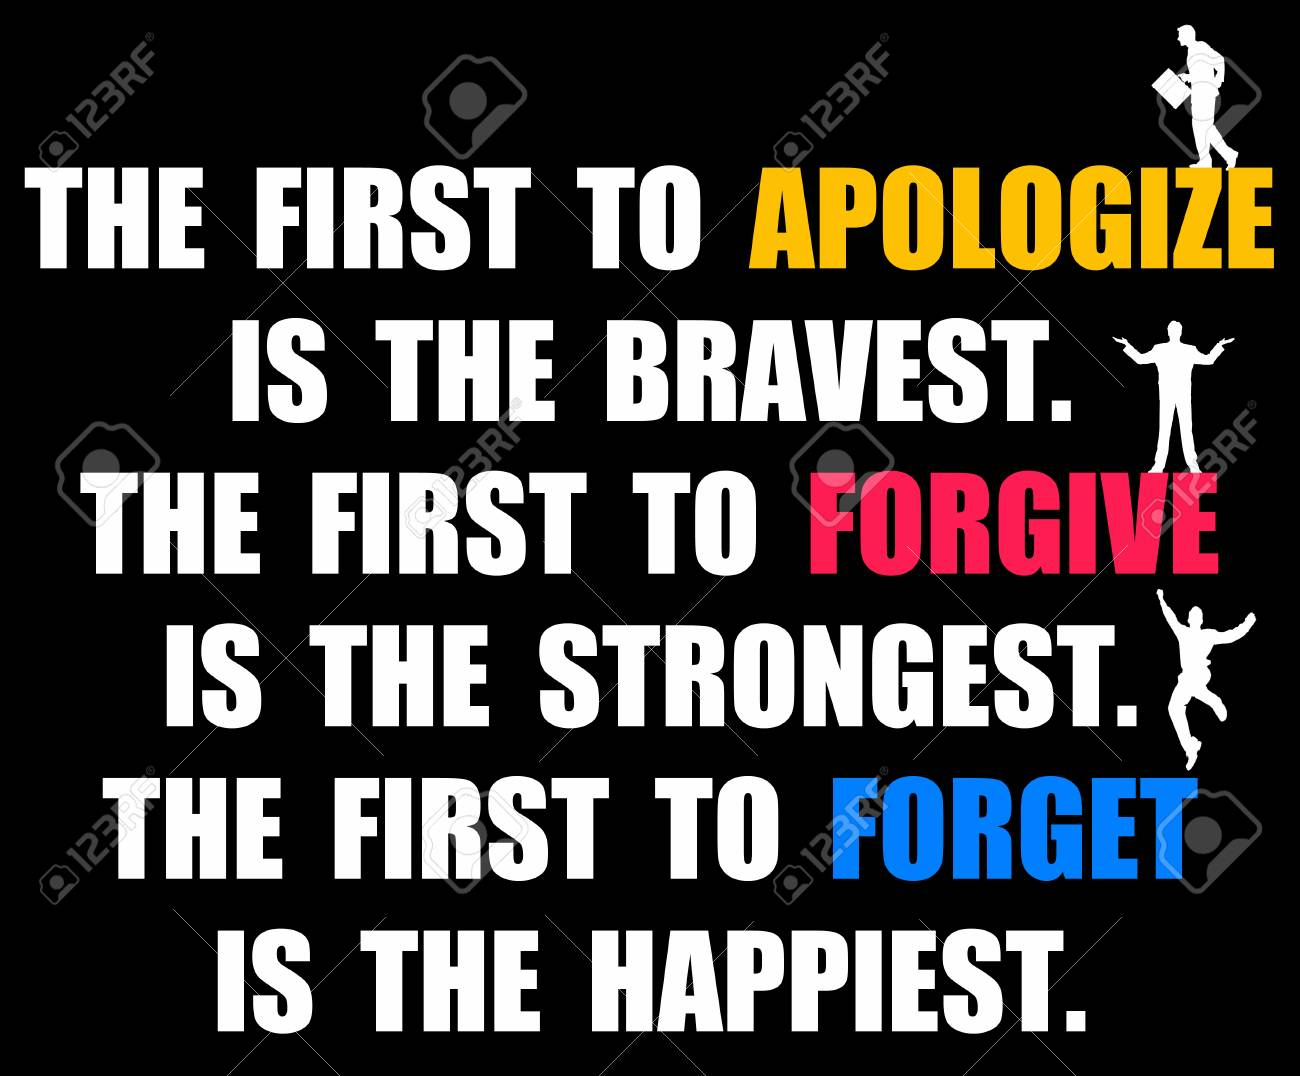 Image result for pictures of forgiveness and reconciliation for kids